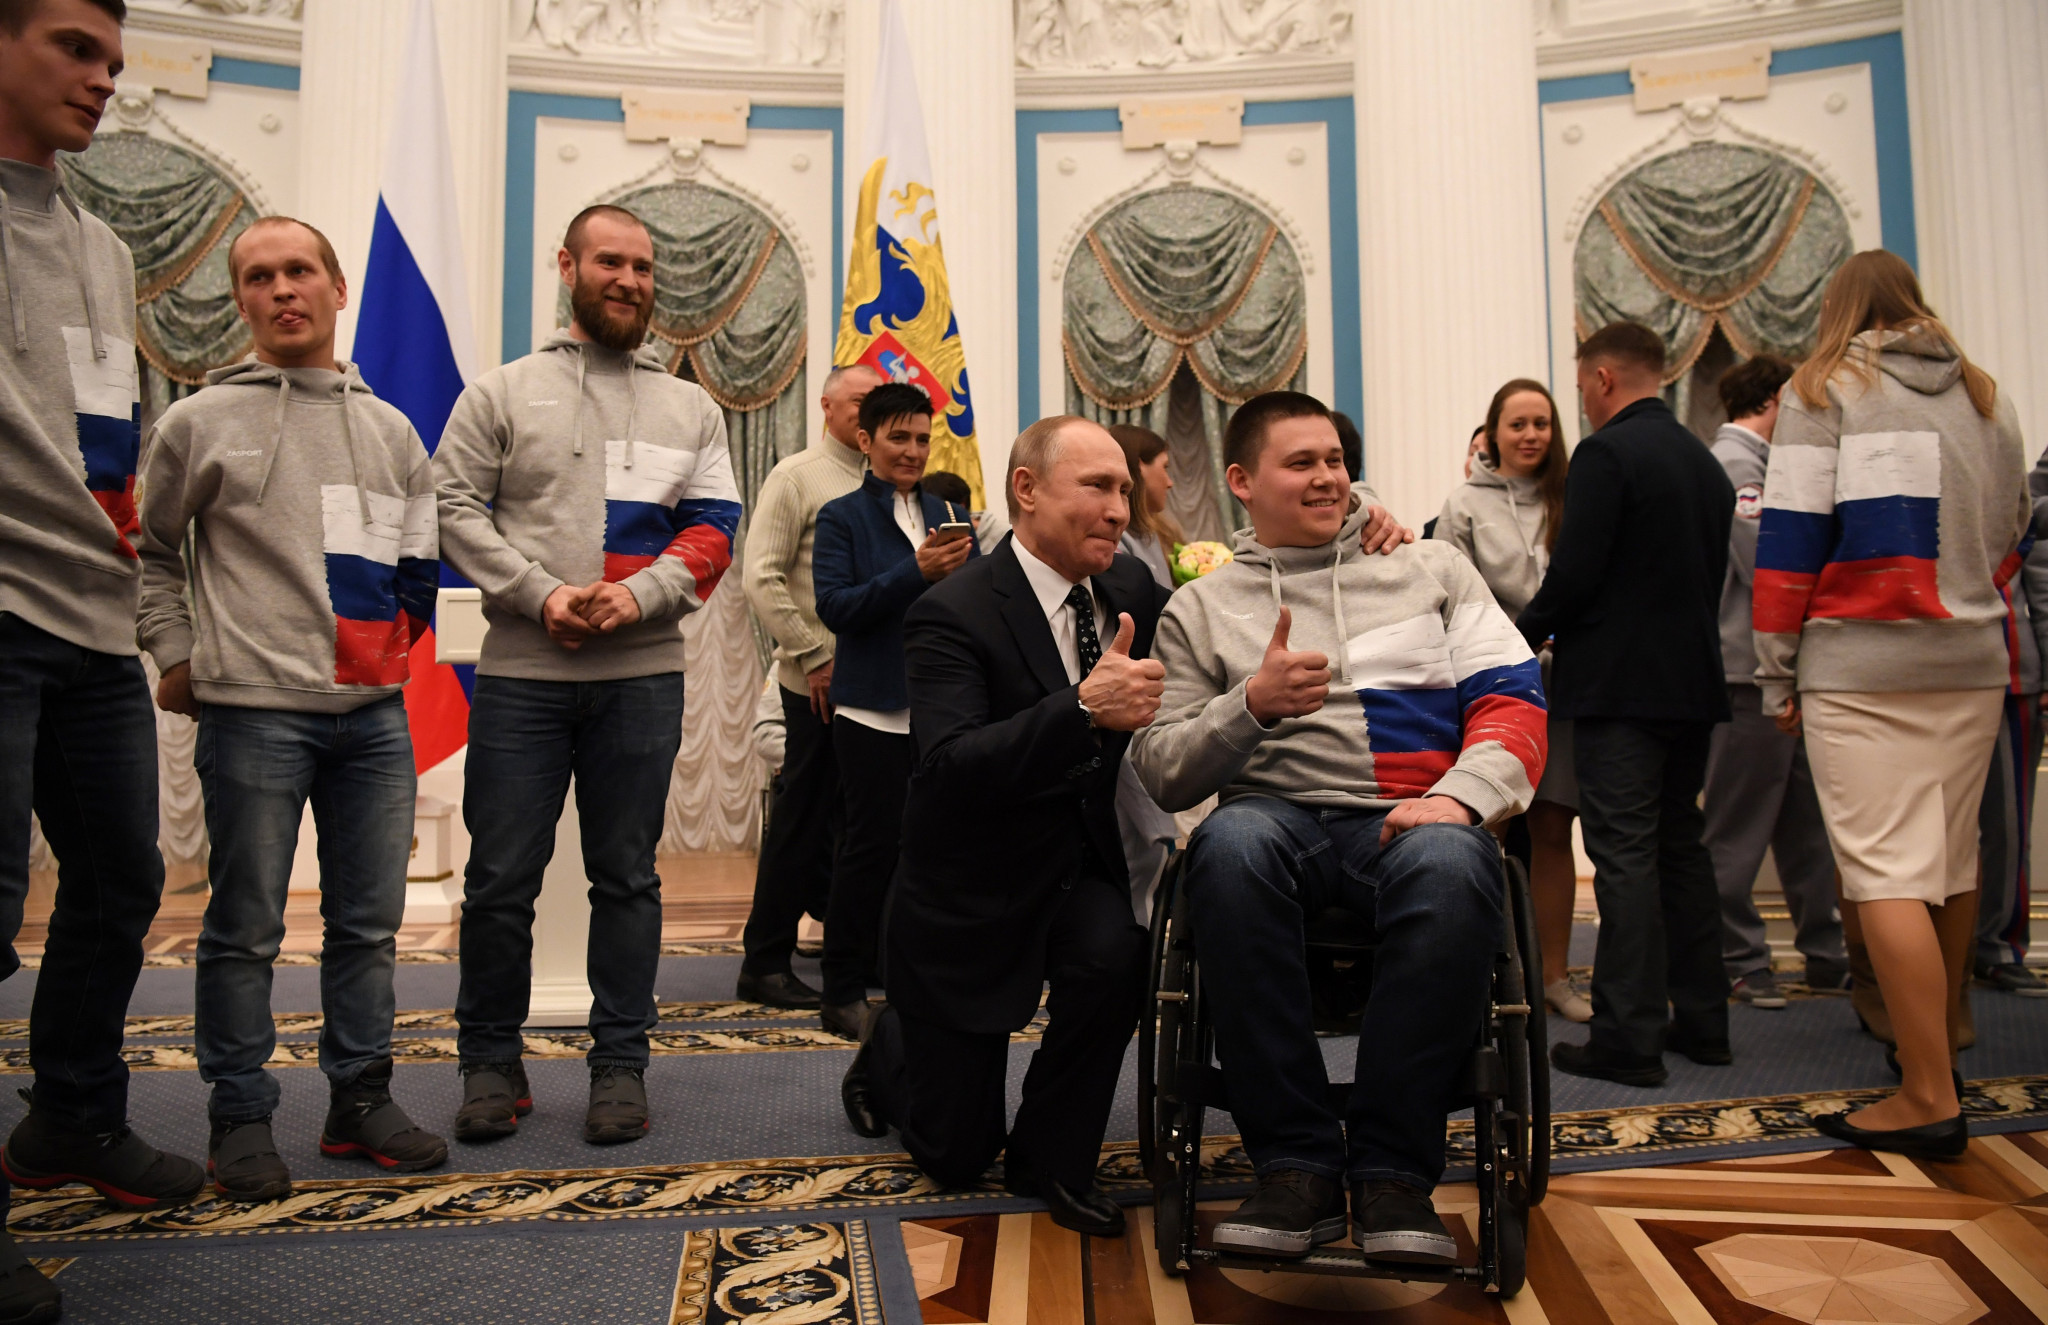 Putin holds reception for Pyeongchang 2018 Paralympic participants